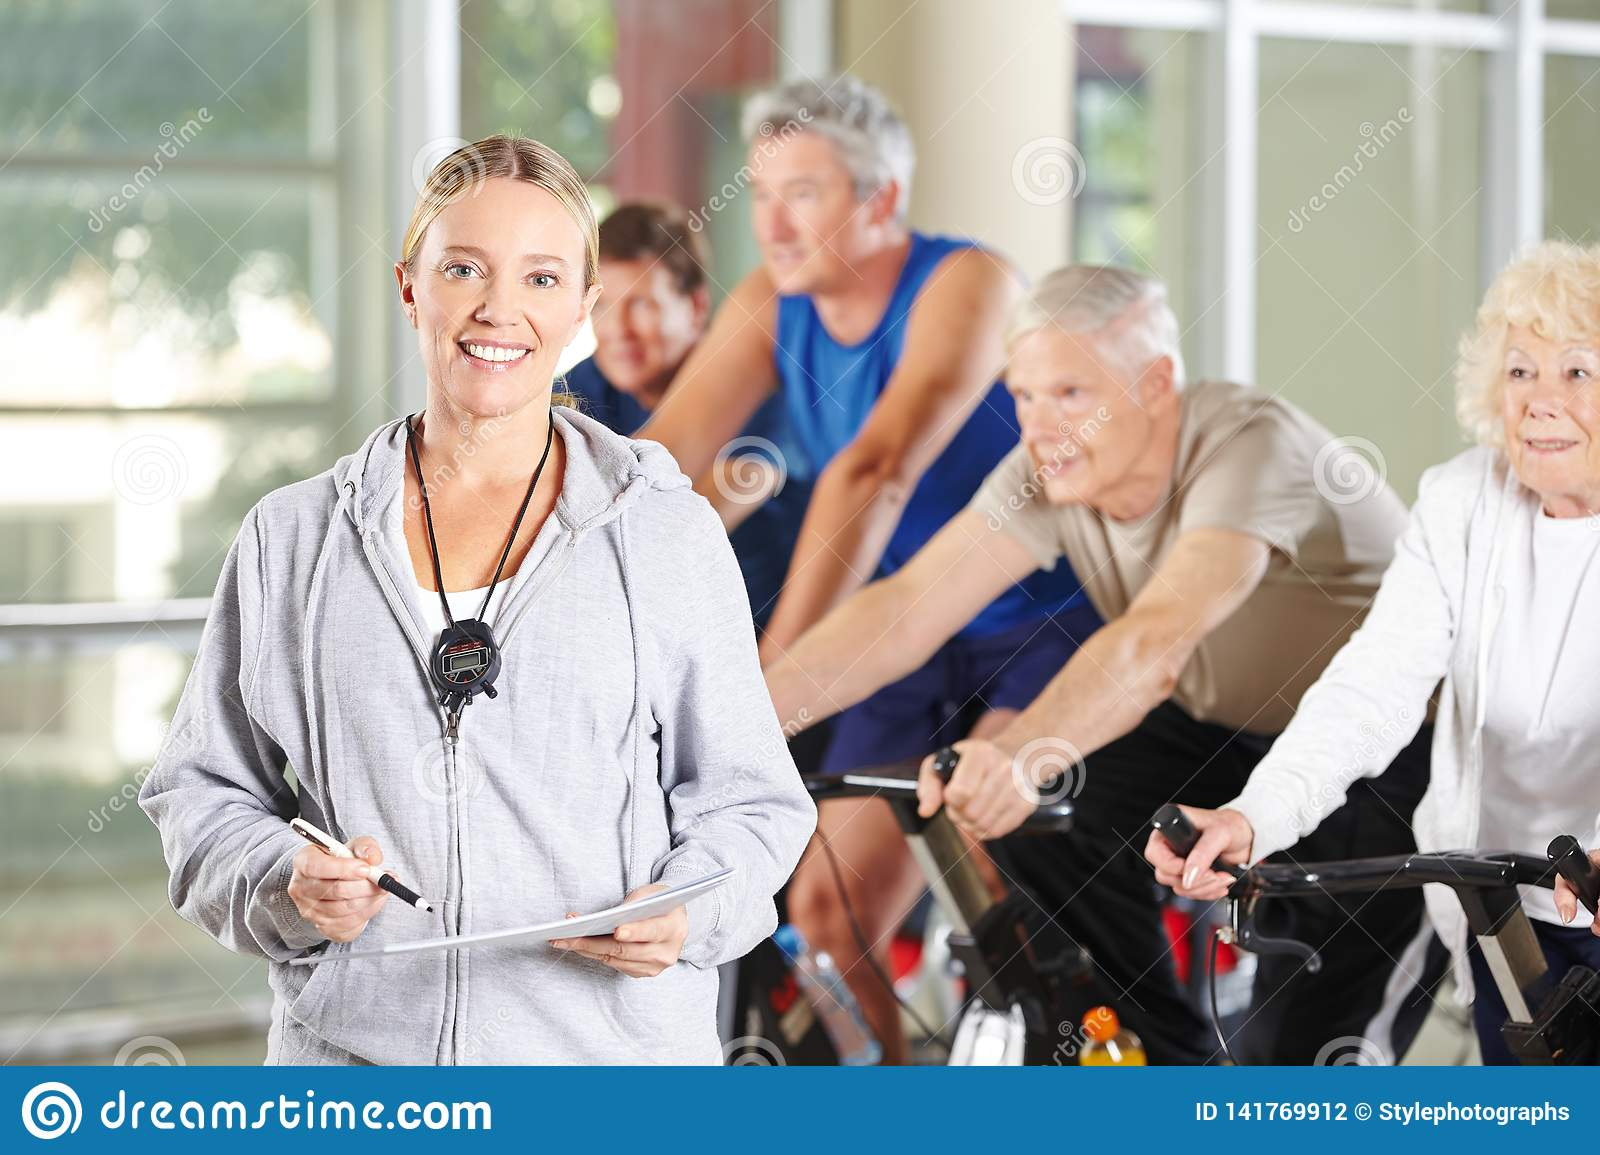 Woman as a trainer for seniors in the fitness center